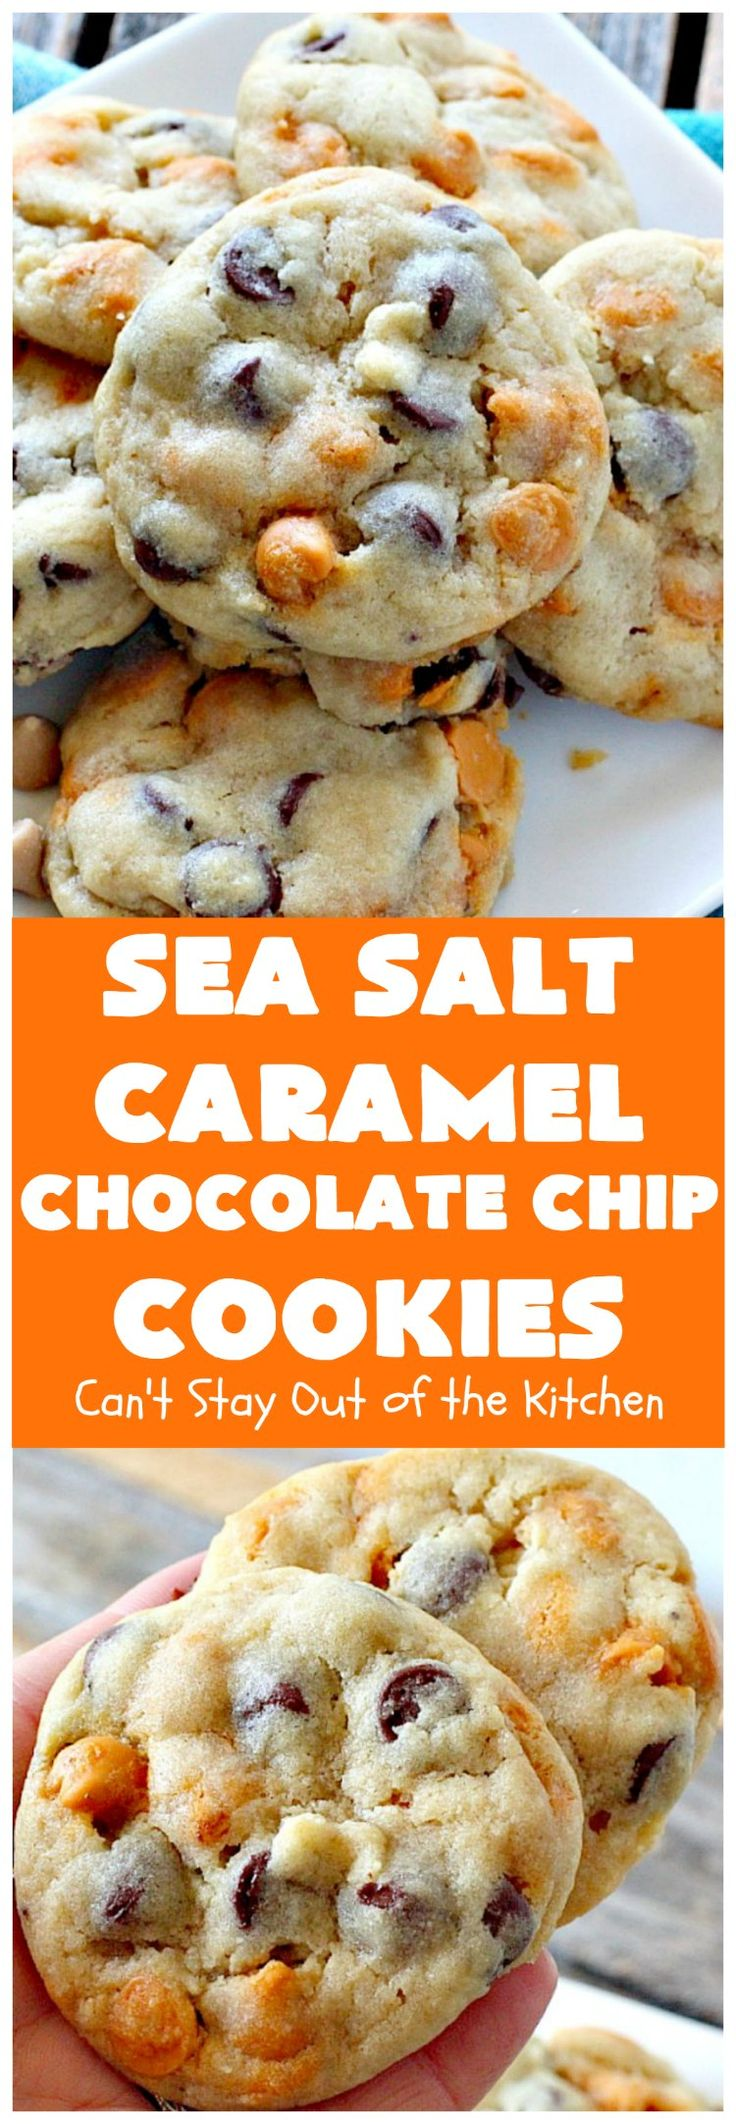 Sea Salt Caramel Chocolate Chip Cookies - soy butter and vegan chocolate chips... what about the caramel chips?